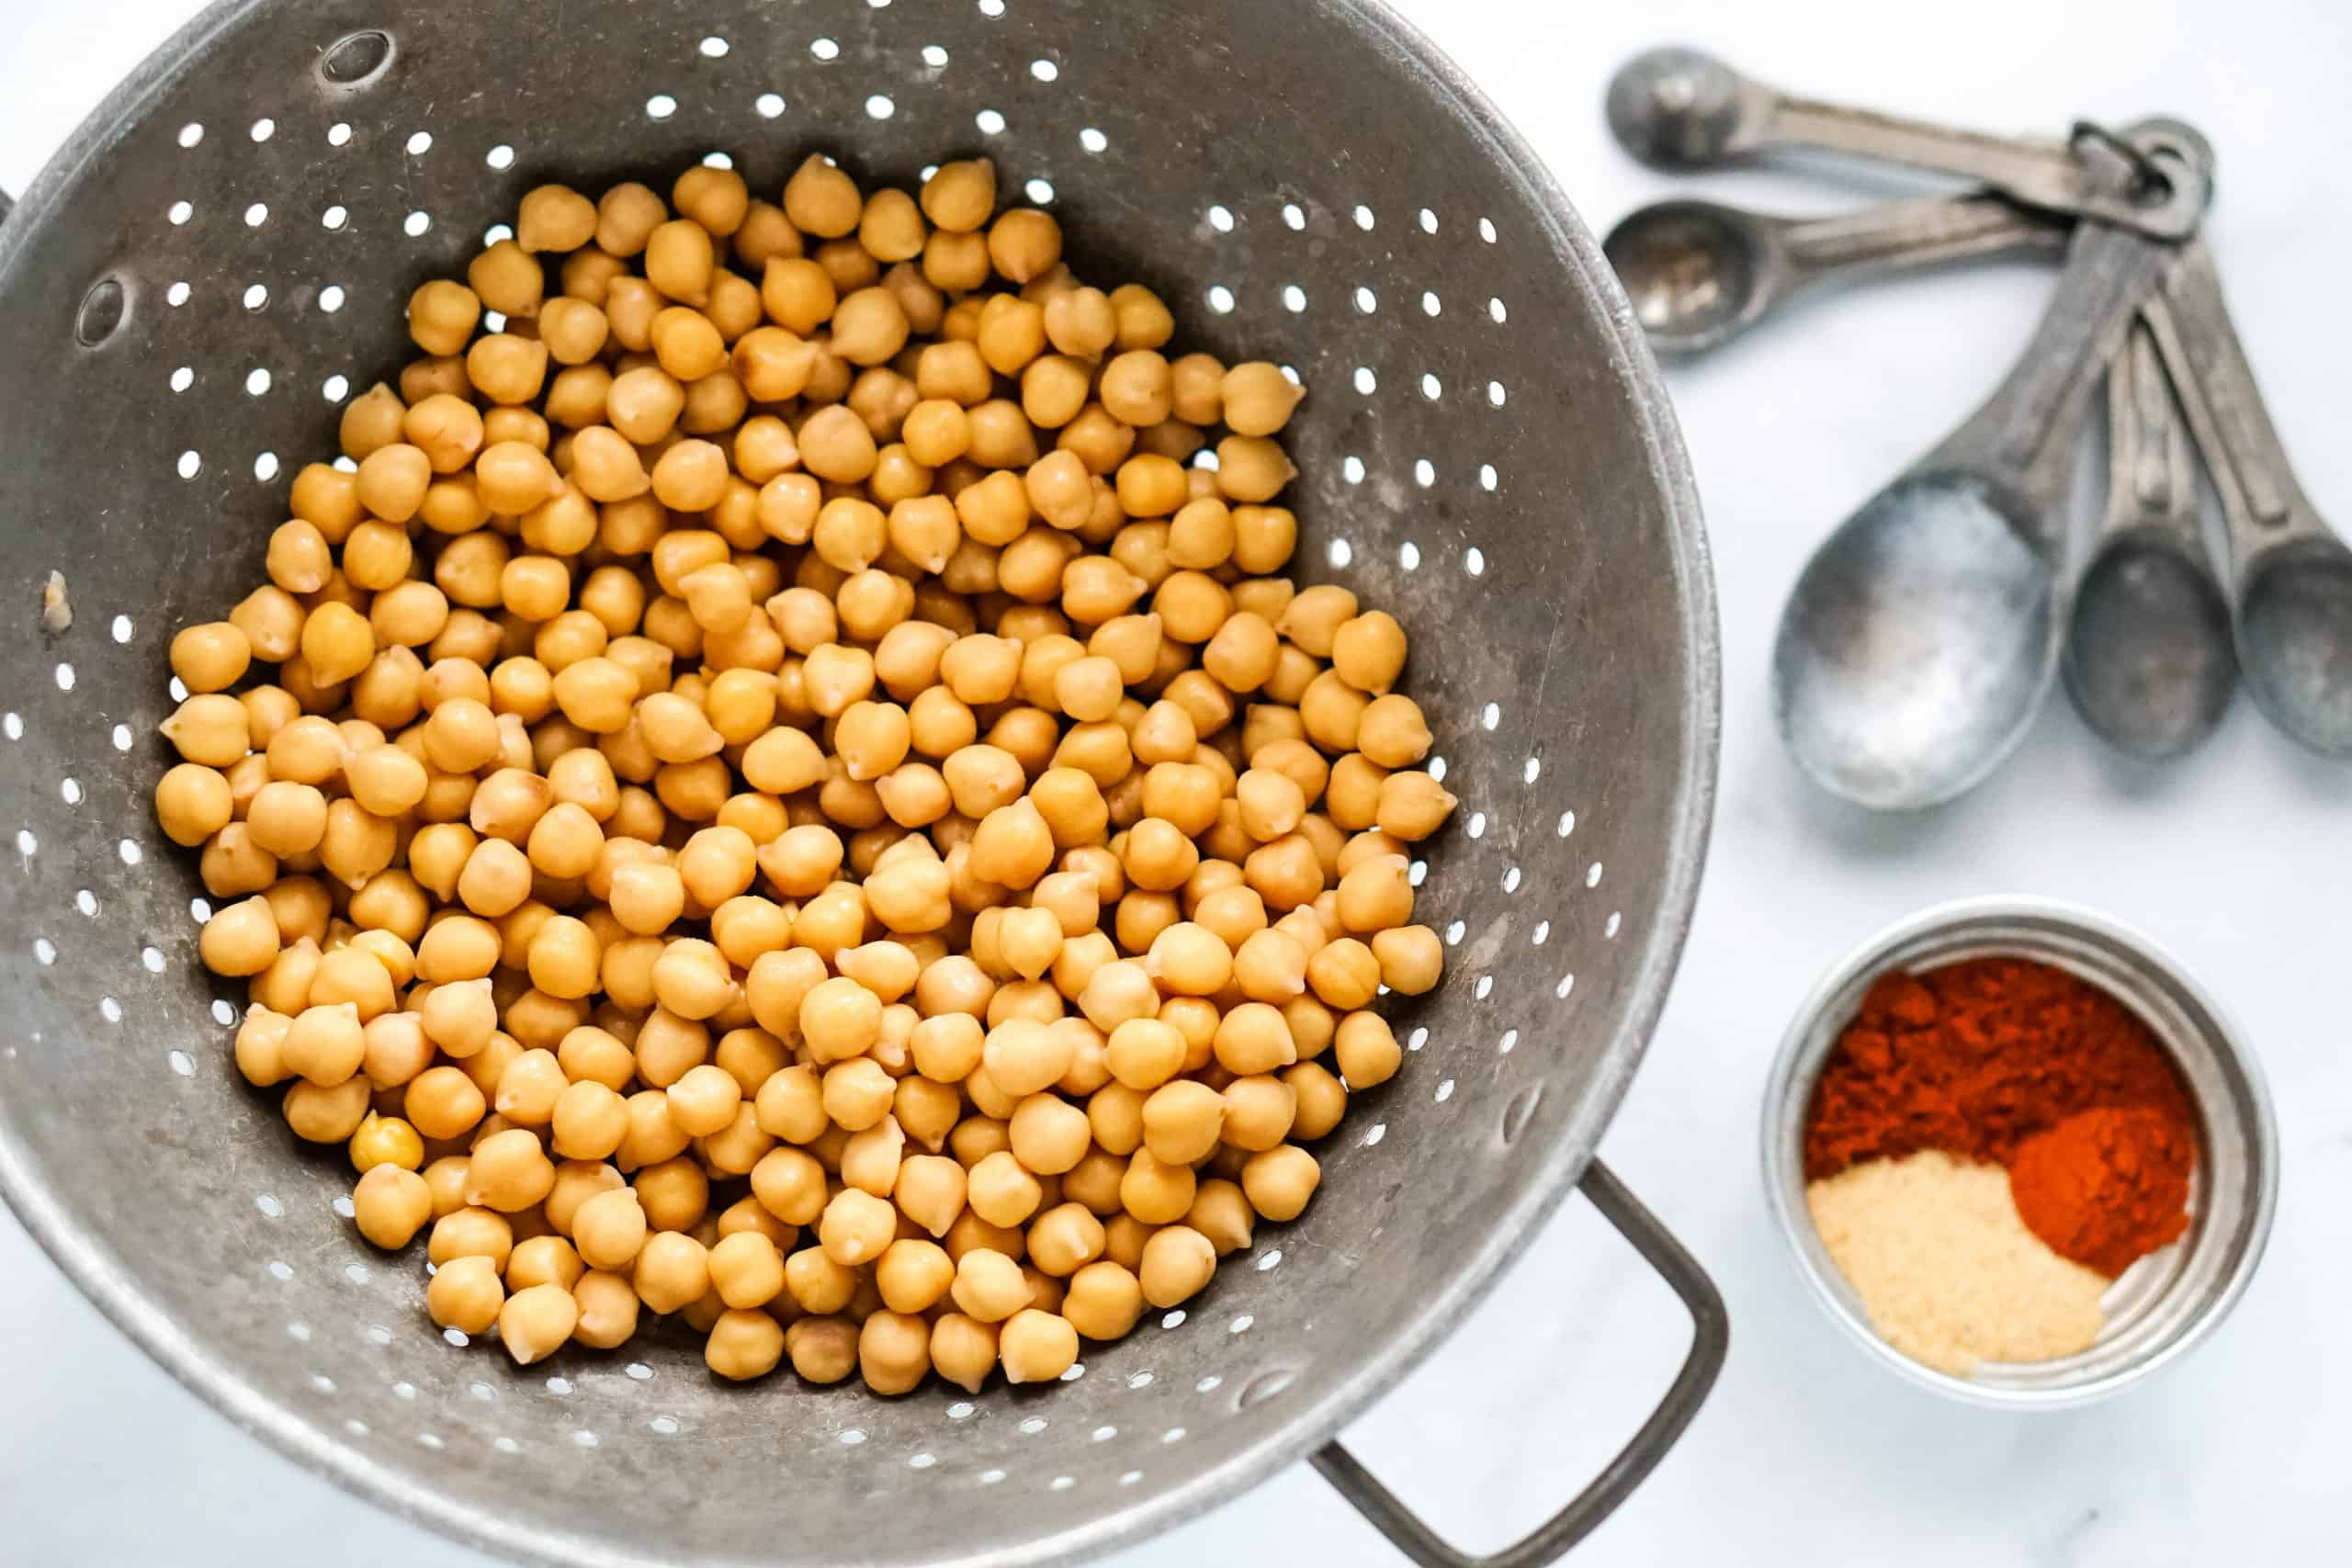 chickpeas in colander, measuring spoons and spices.